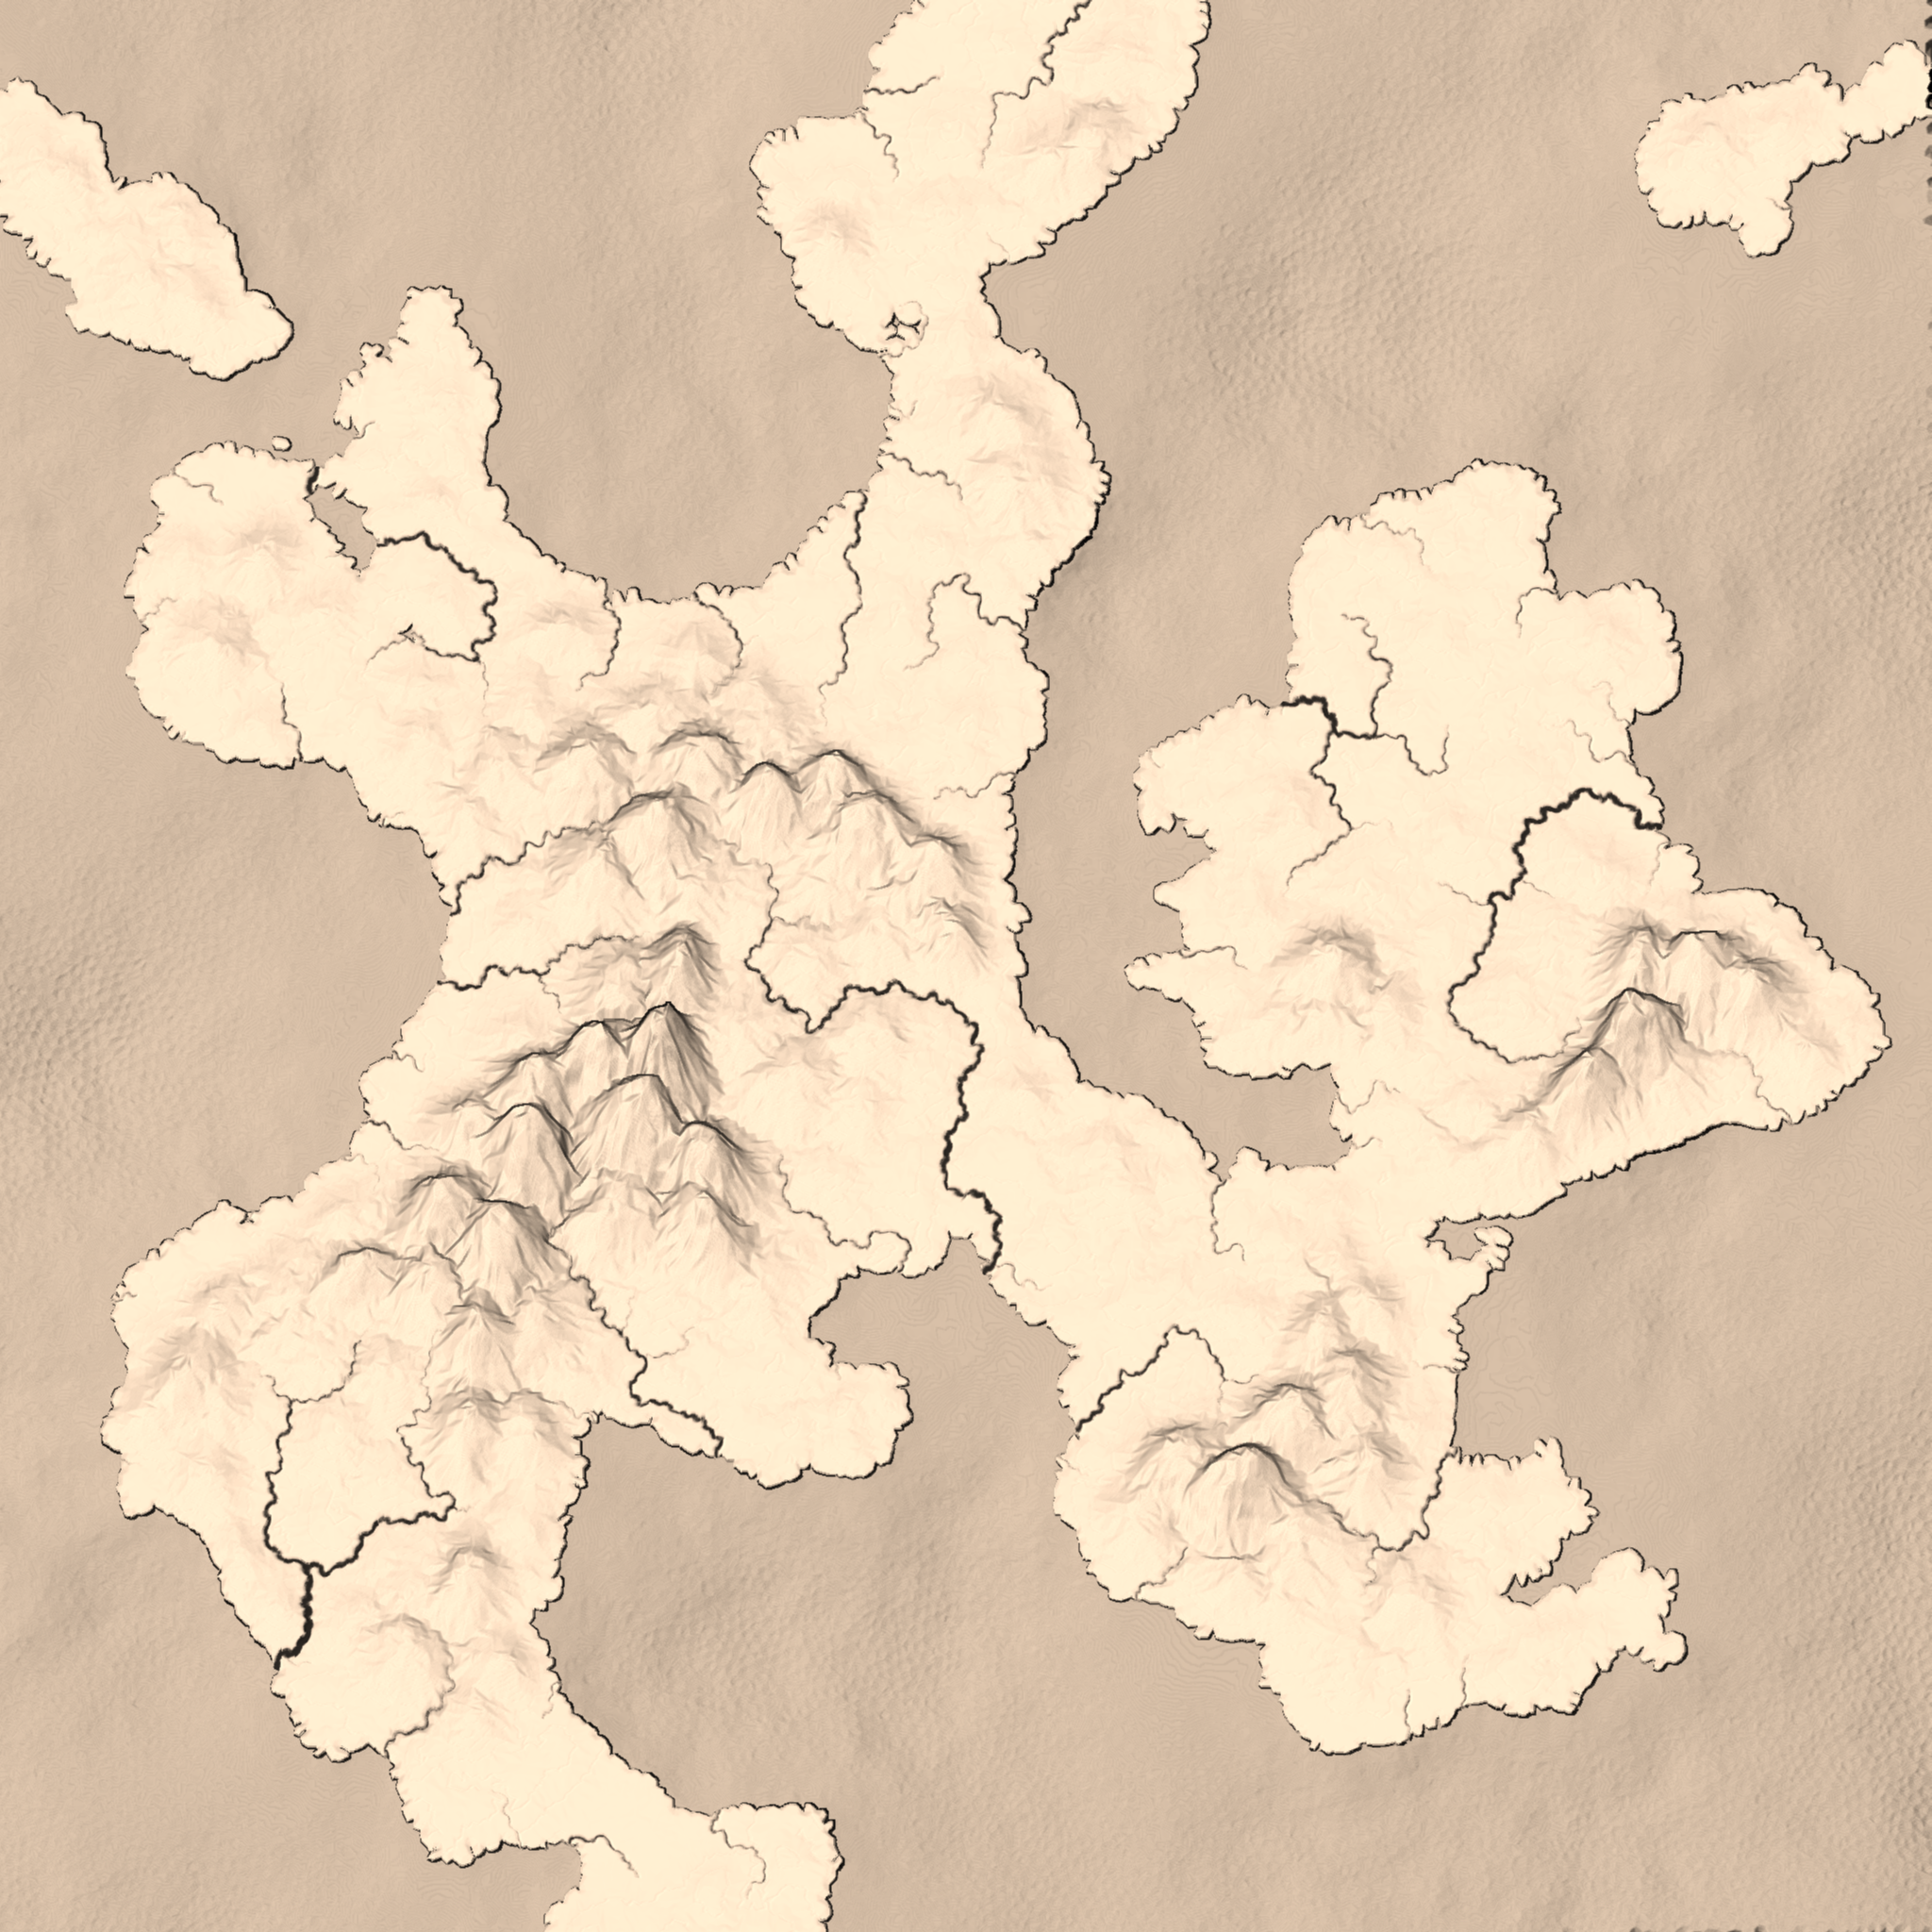 Map from Mapgen4. Seed 228 in sepia